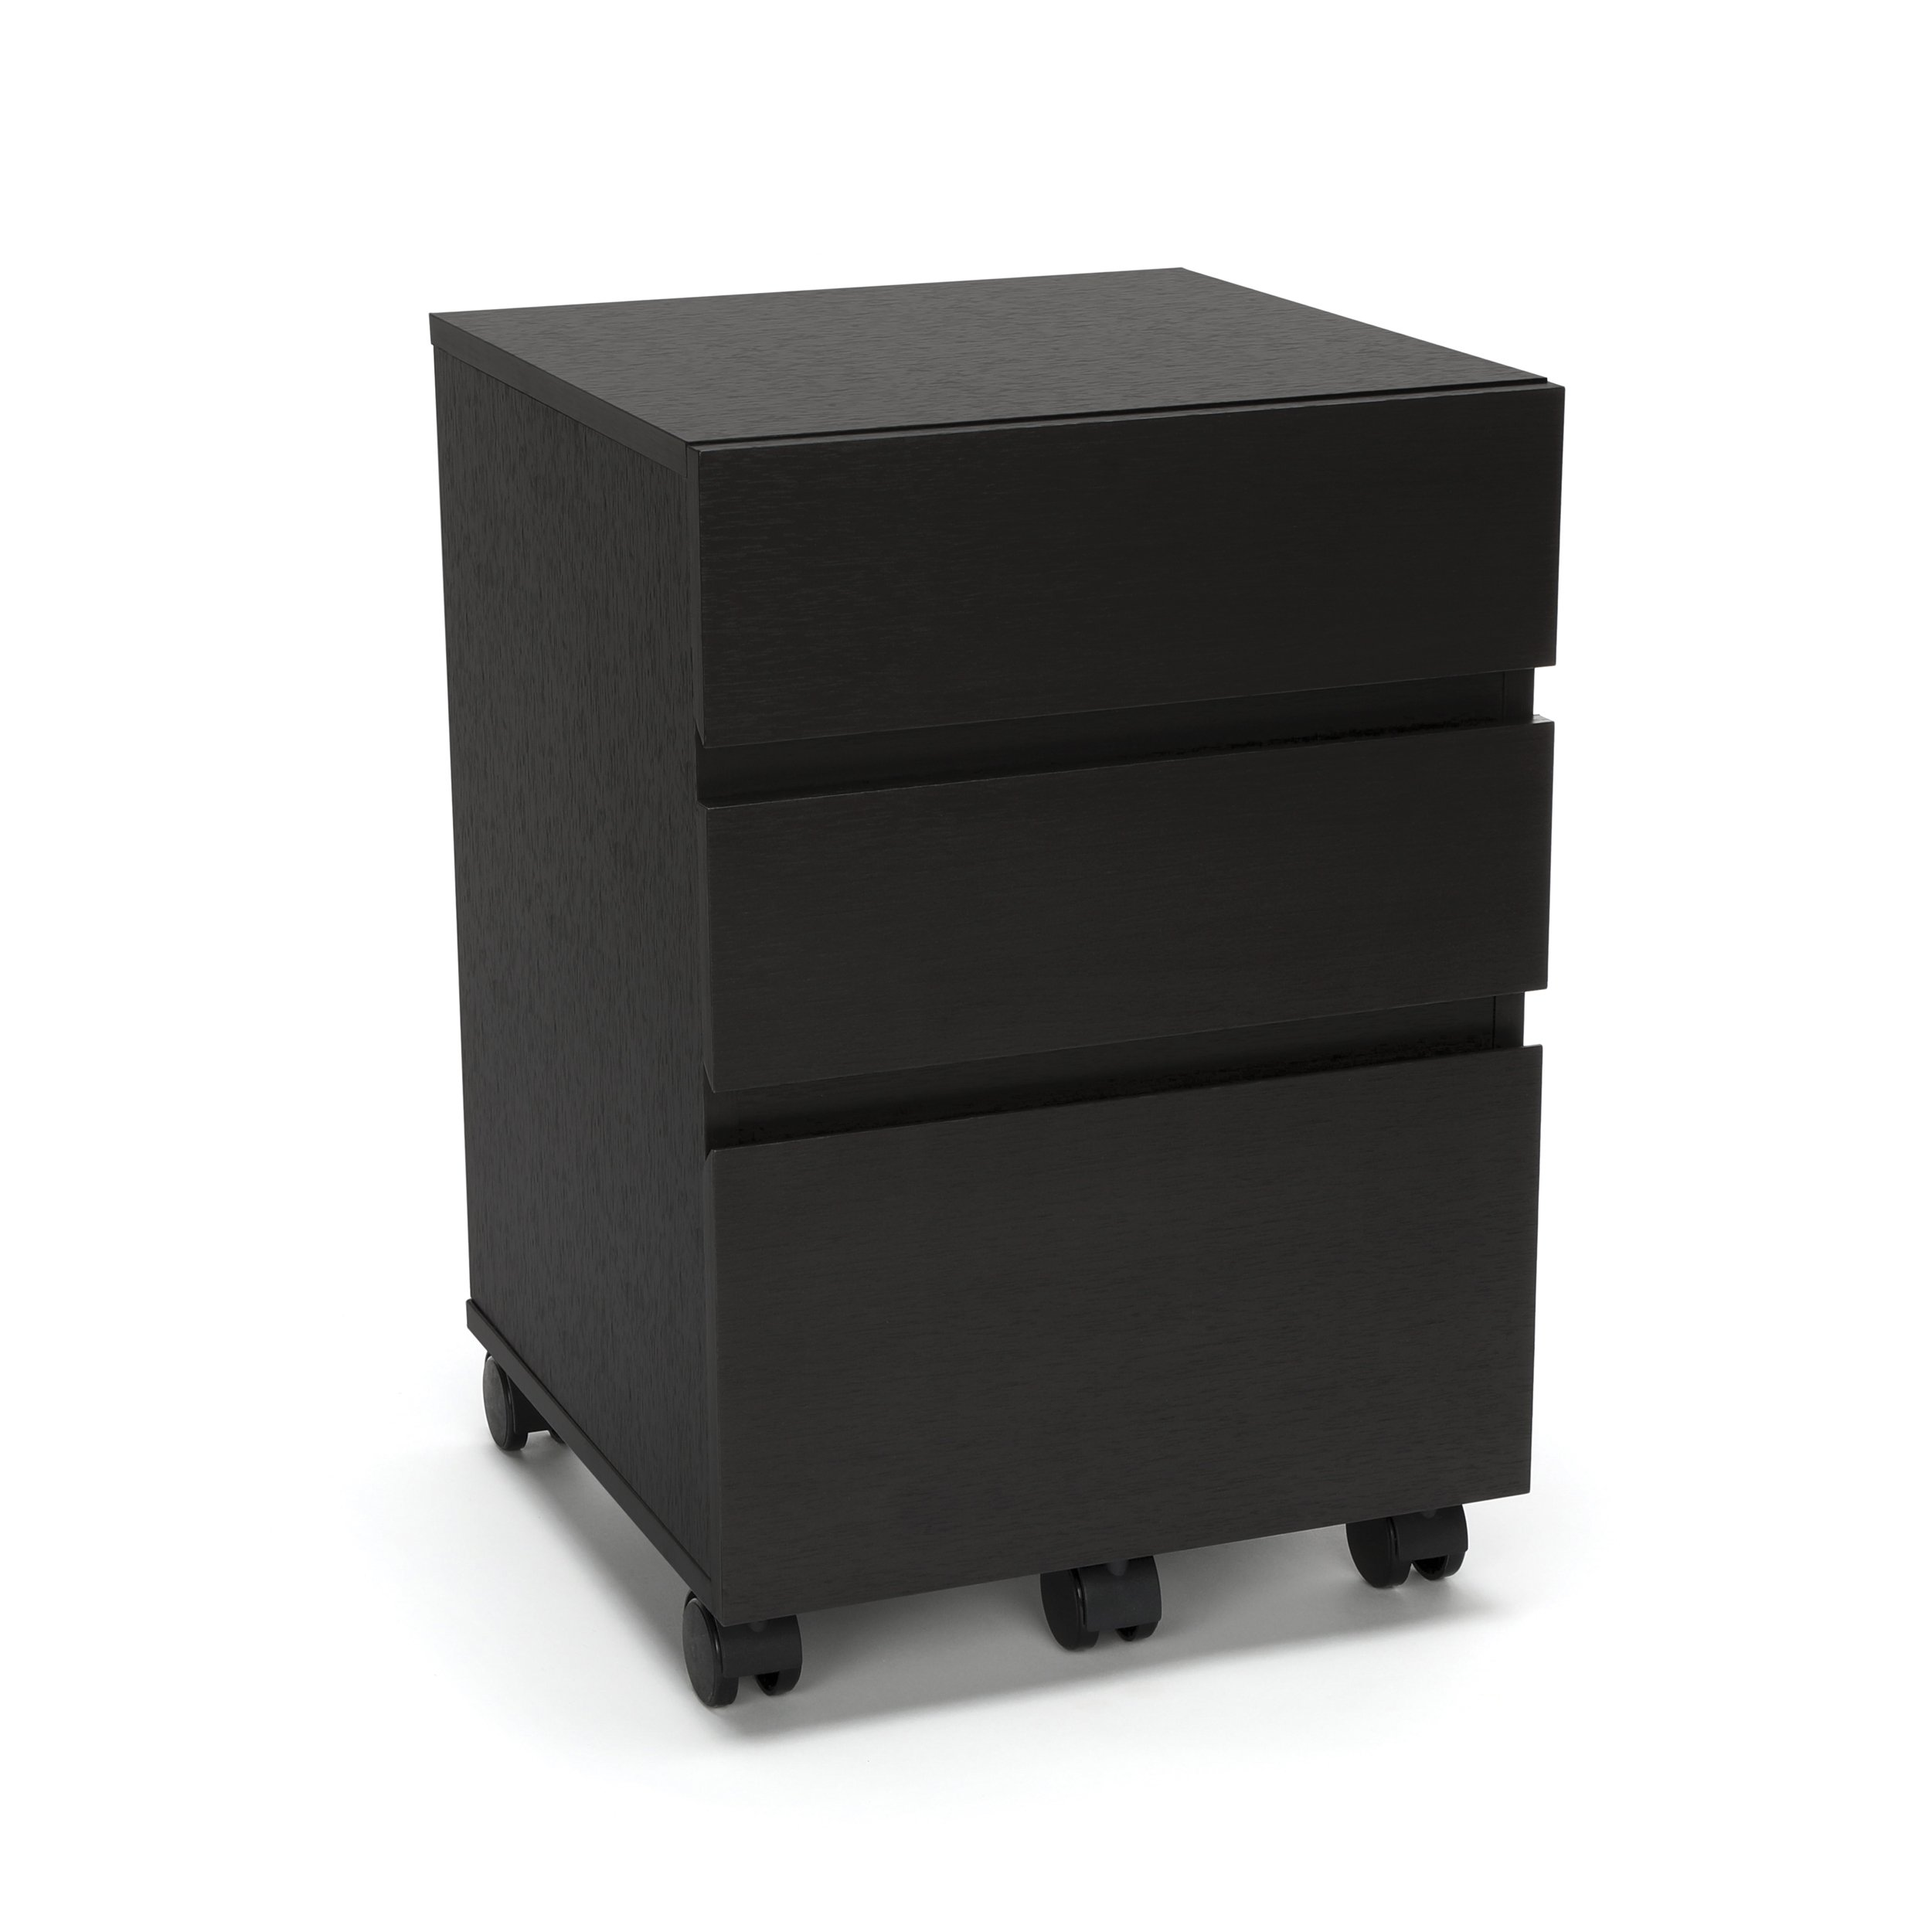 Essentials File Cabinet - 3-Drawer Wheeled Mobile Pedestal Cabinet, Espresso (ESS-1030-ESP) by OFM